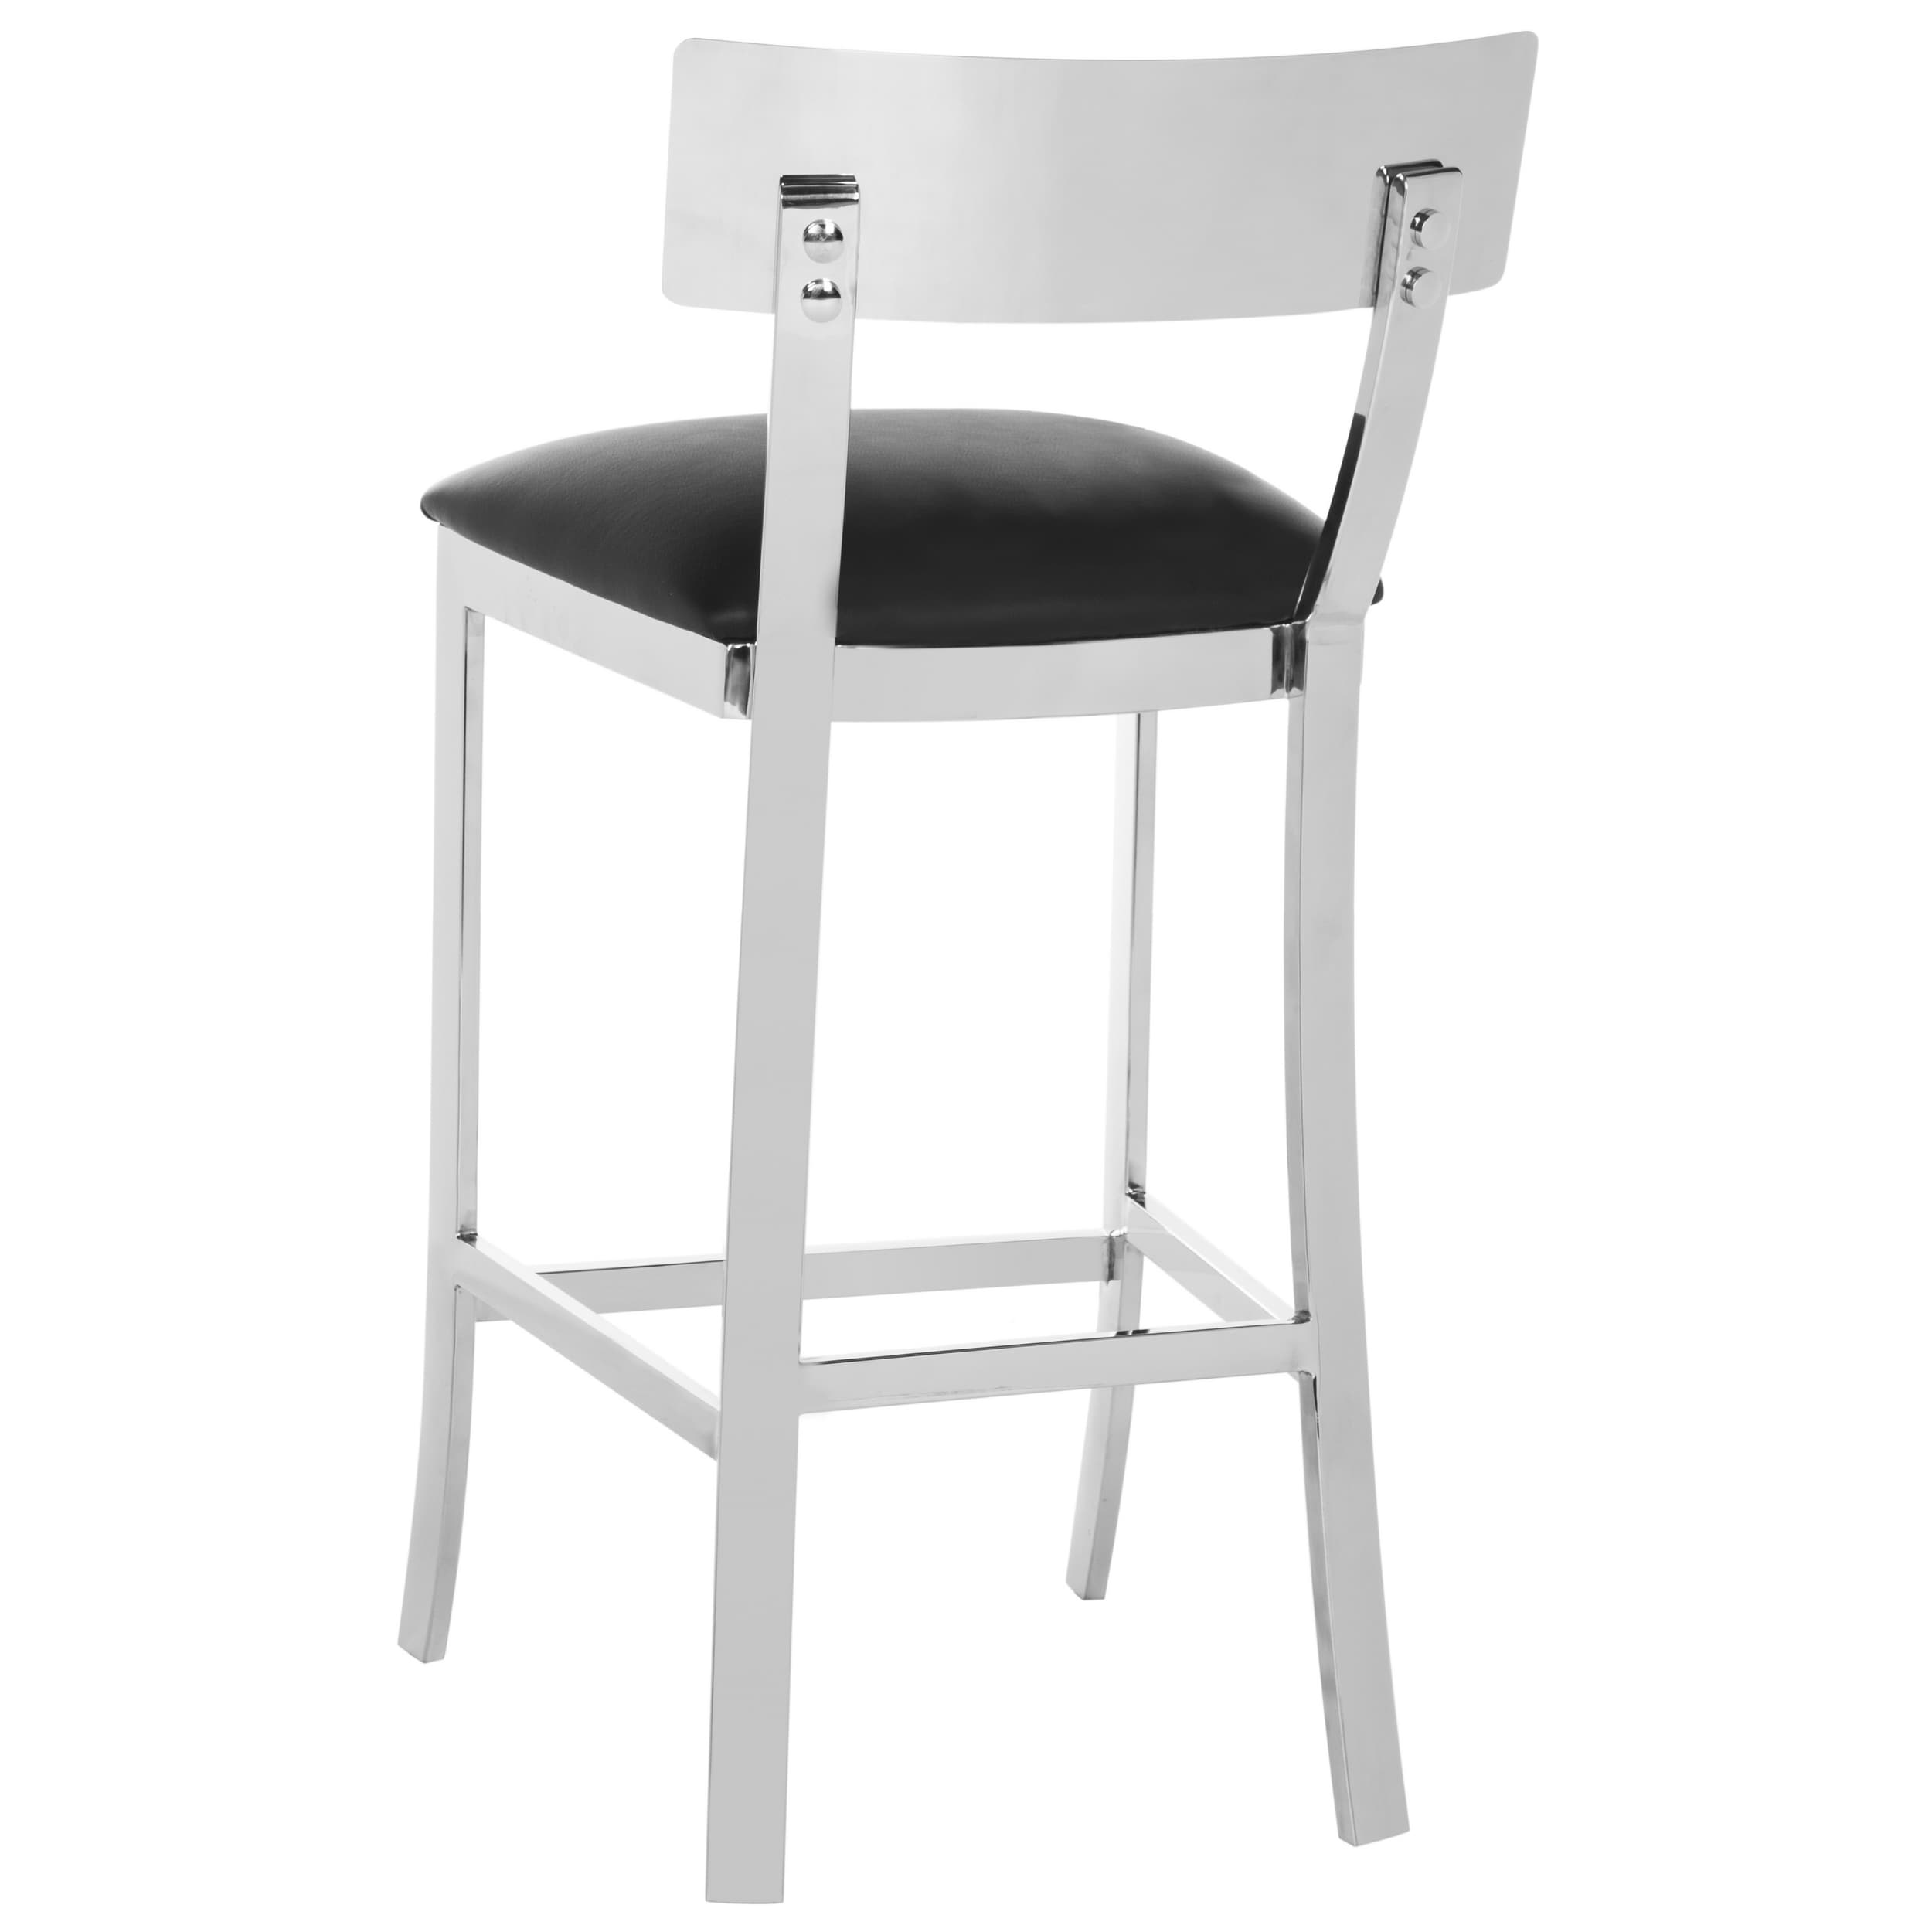 black bar brown choose countereight concept heightols decor marvelous stool counter with arms leather stools amazing faux height image rooms amazon kitchen legs home antique table chairs leatherkfast cream and inch white ideas